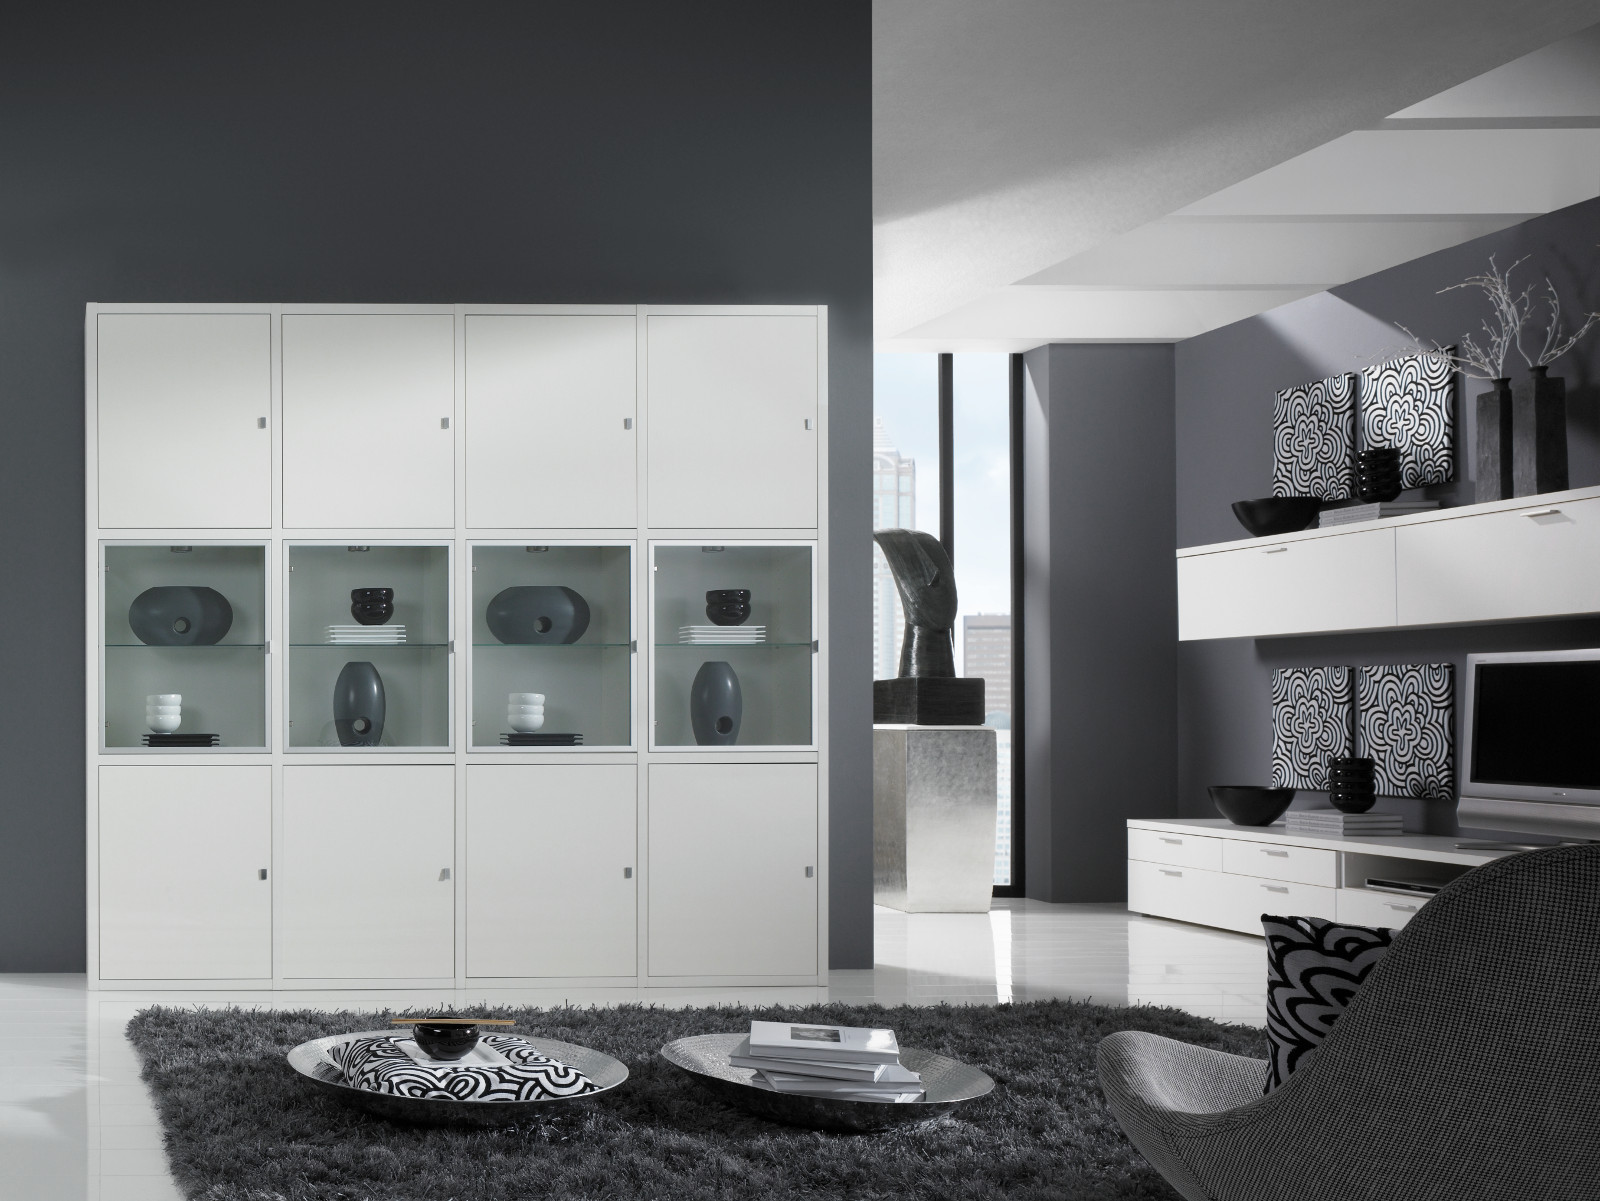 wohnwand b cherwand lack wei matt schiebet r glas. Black Bedroom Furniture Sets. Home Design Ideas